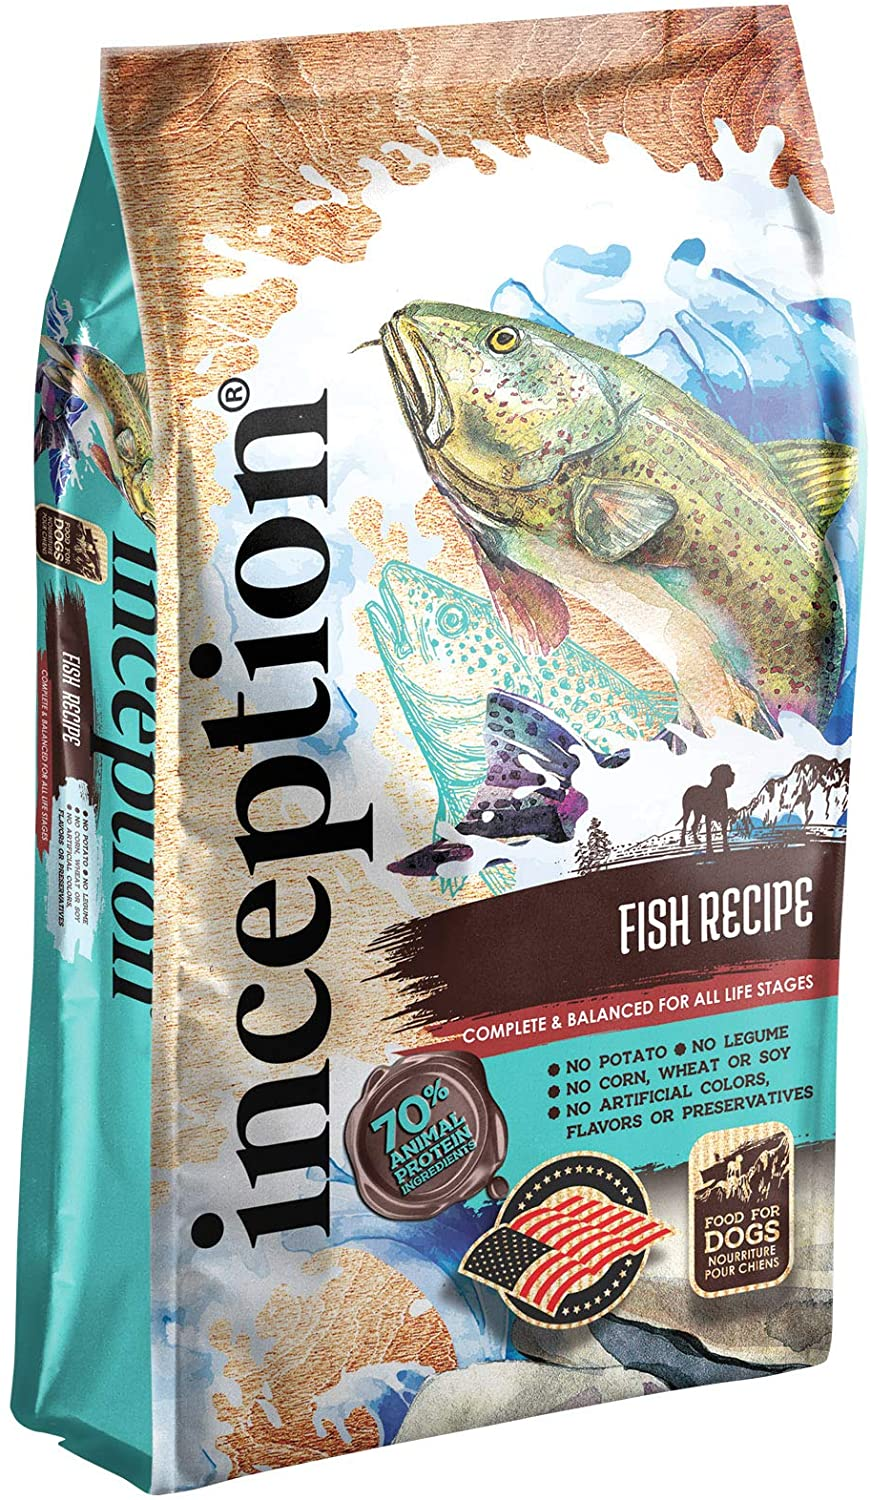 Inception Fish Recipe Whole Grain Dry Dog Food, 27-lb bag